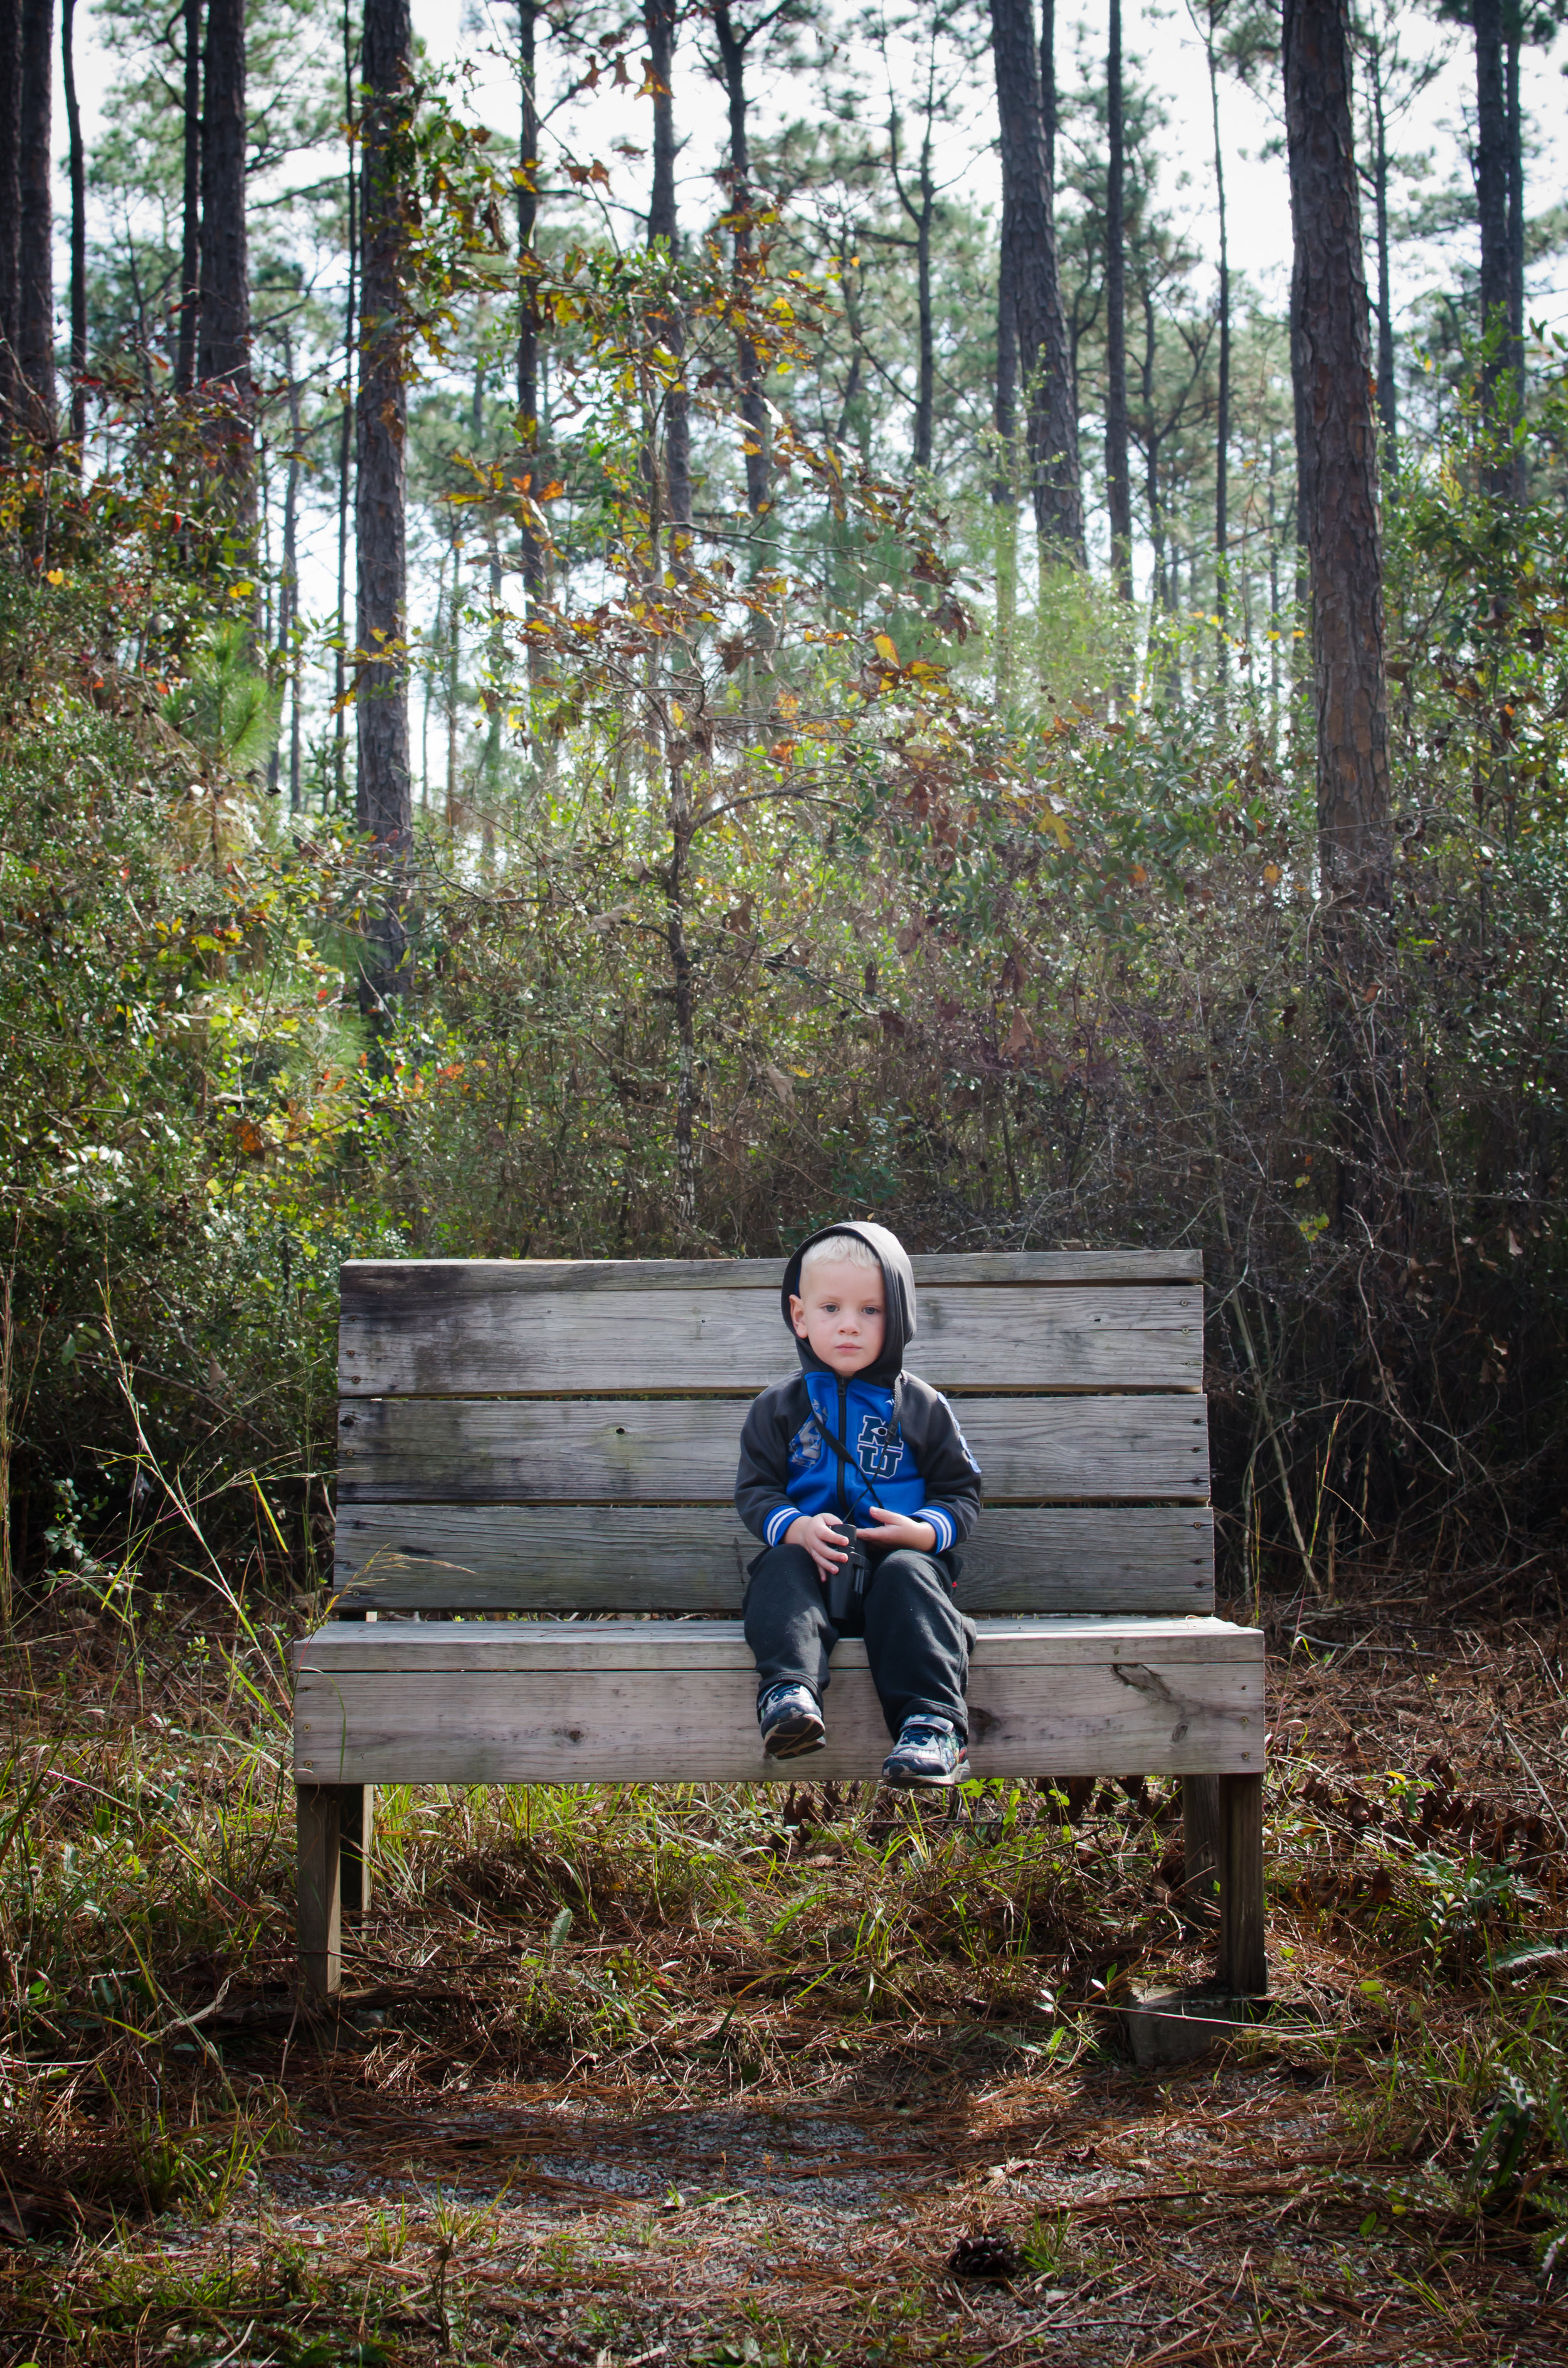 I took this photo on a short hike in Ocean Springs, Mississippi. It was a cool morning and I love this photo because of the light, composition, expression on Nates face and the memory of spending time together out in nature as a family.